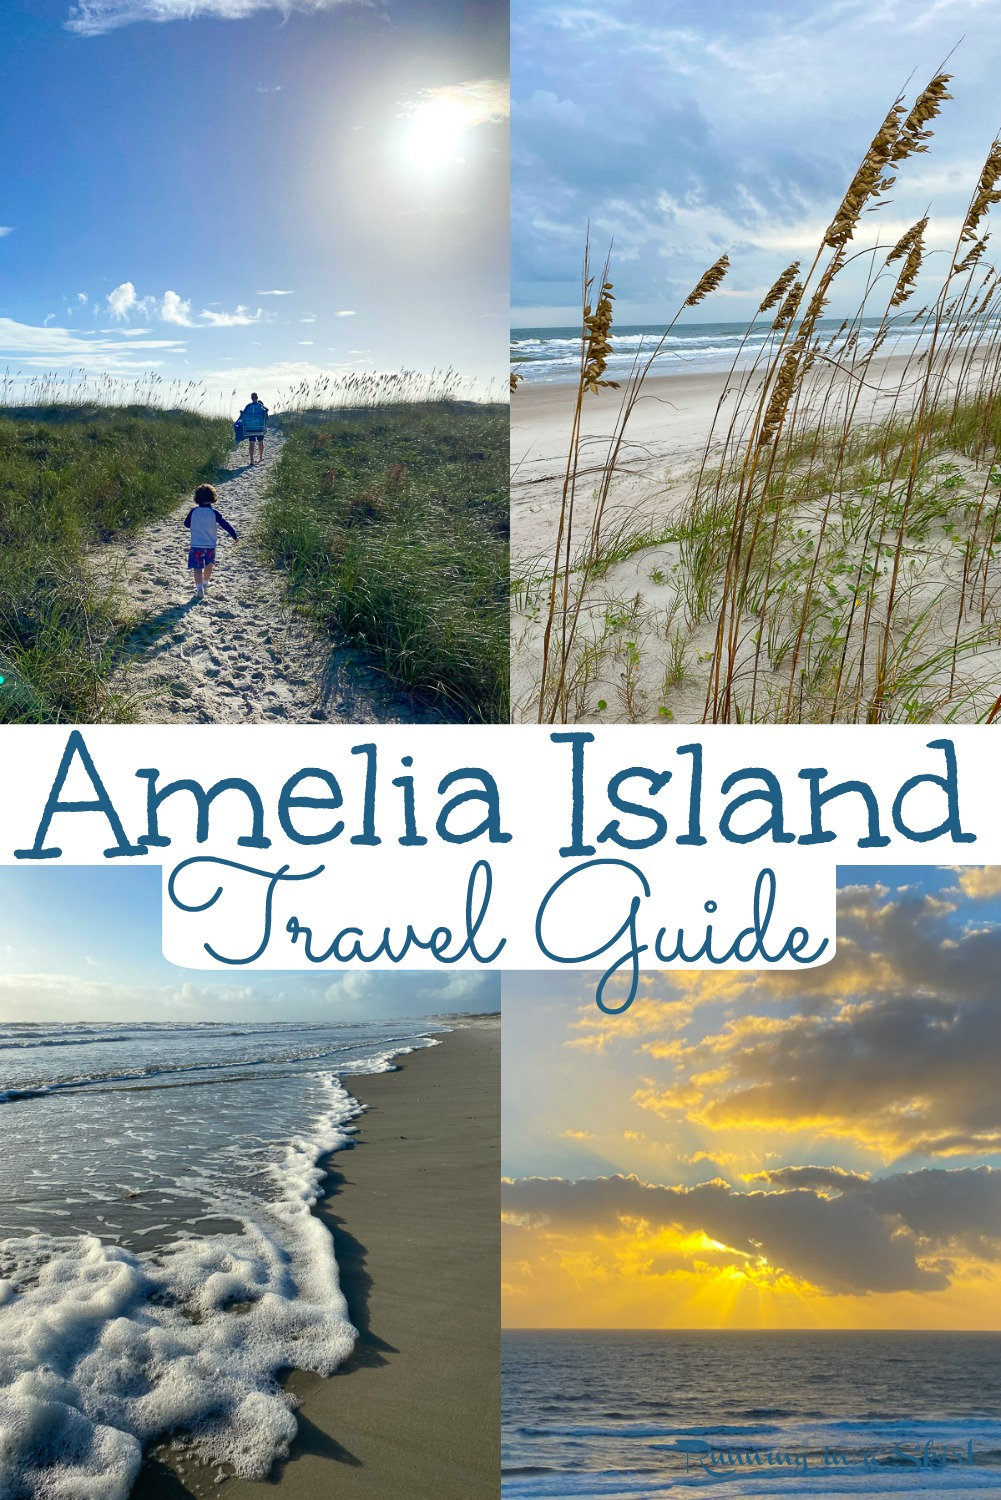 Things to Do in Amelia Island Florida - The Best Amelia Island Travel Guide with must see beach locations, restaurants, shops, places to find shells/ shark teeth, sunrise/sunset and state parks. Great with kids and adults. Find your vacations buckets lists here. / Running in a Skirt #florida #travelguide #floridatravel #travelblog #ameliaisland via @juliewunder